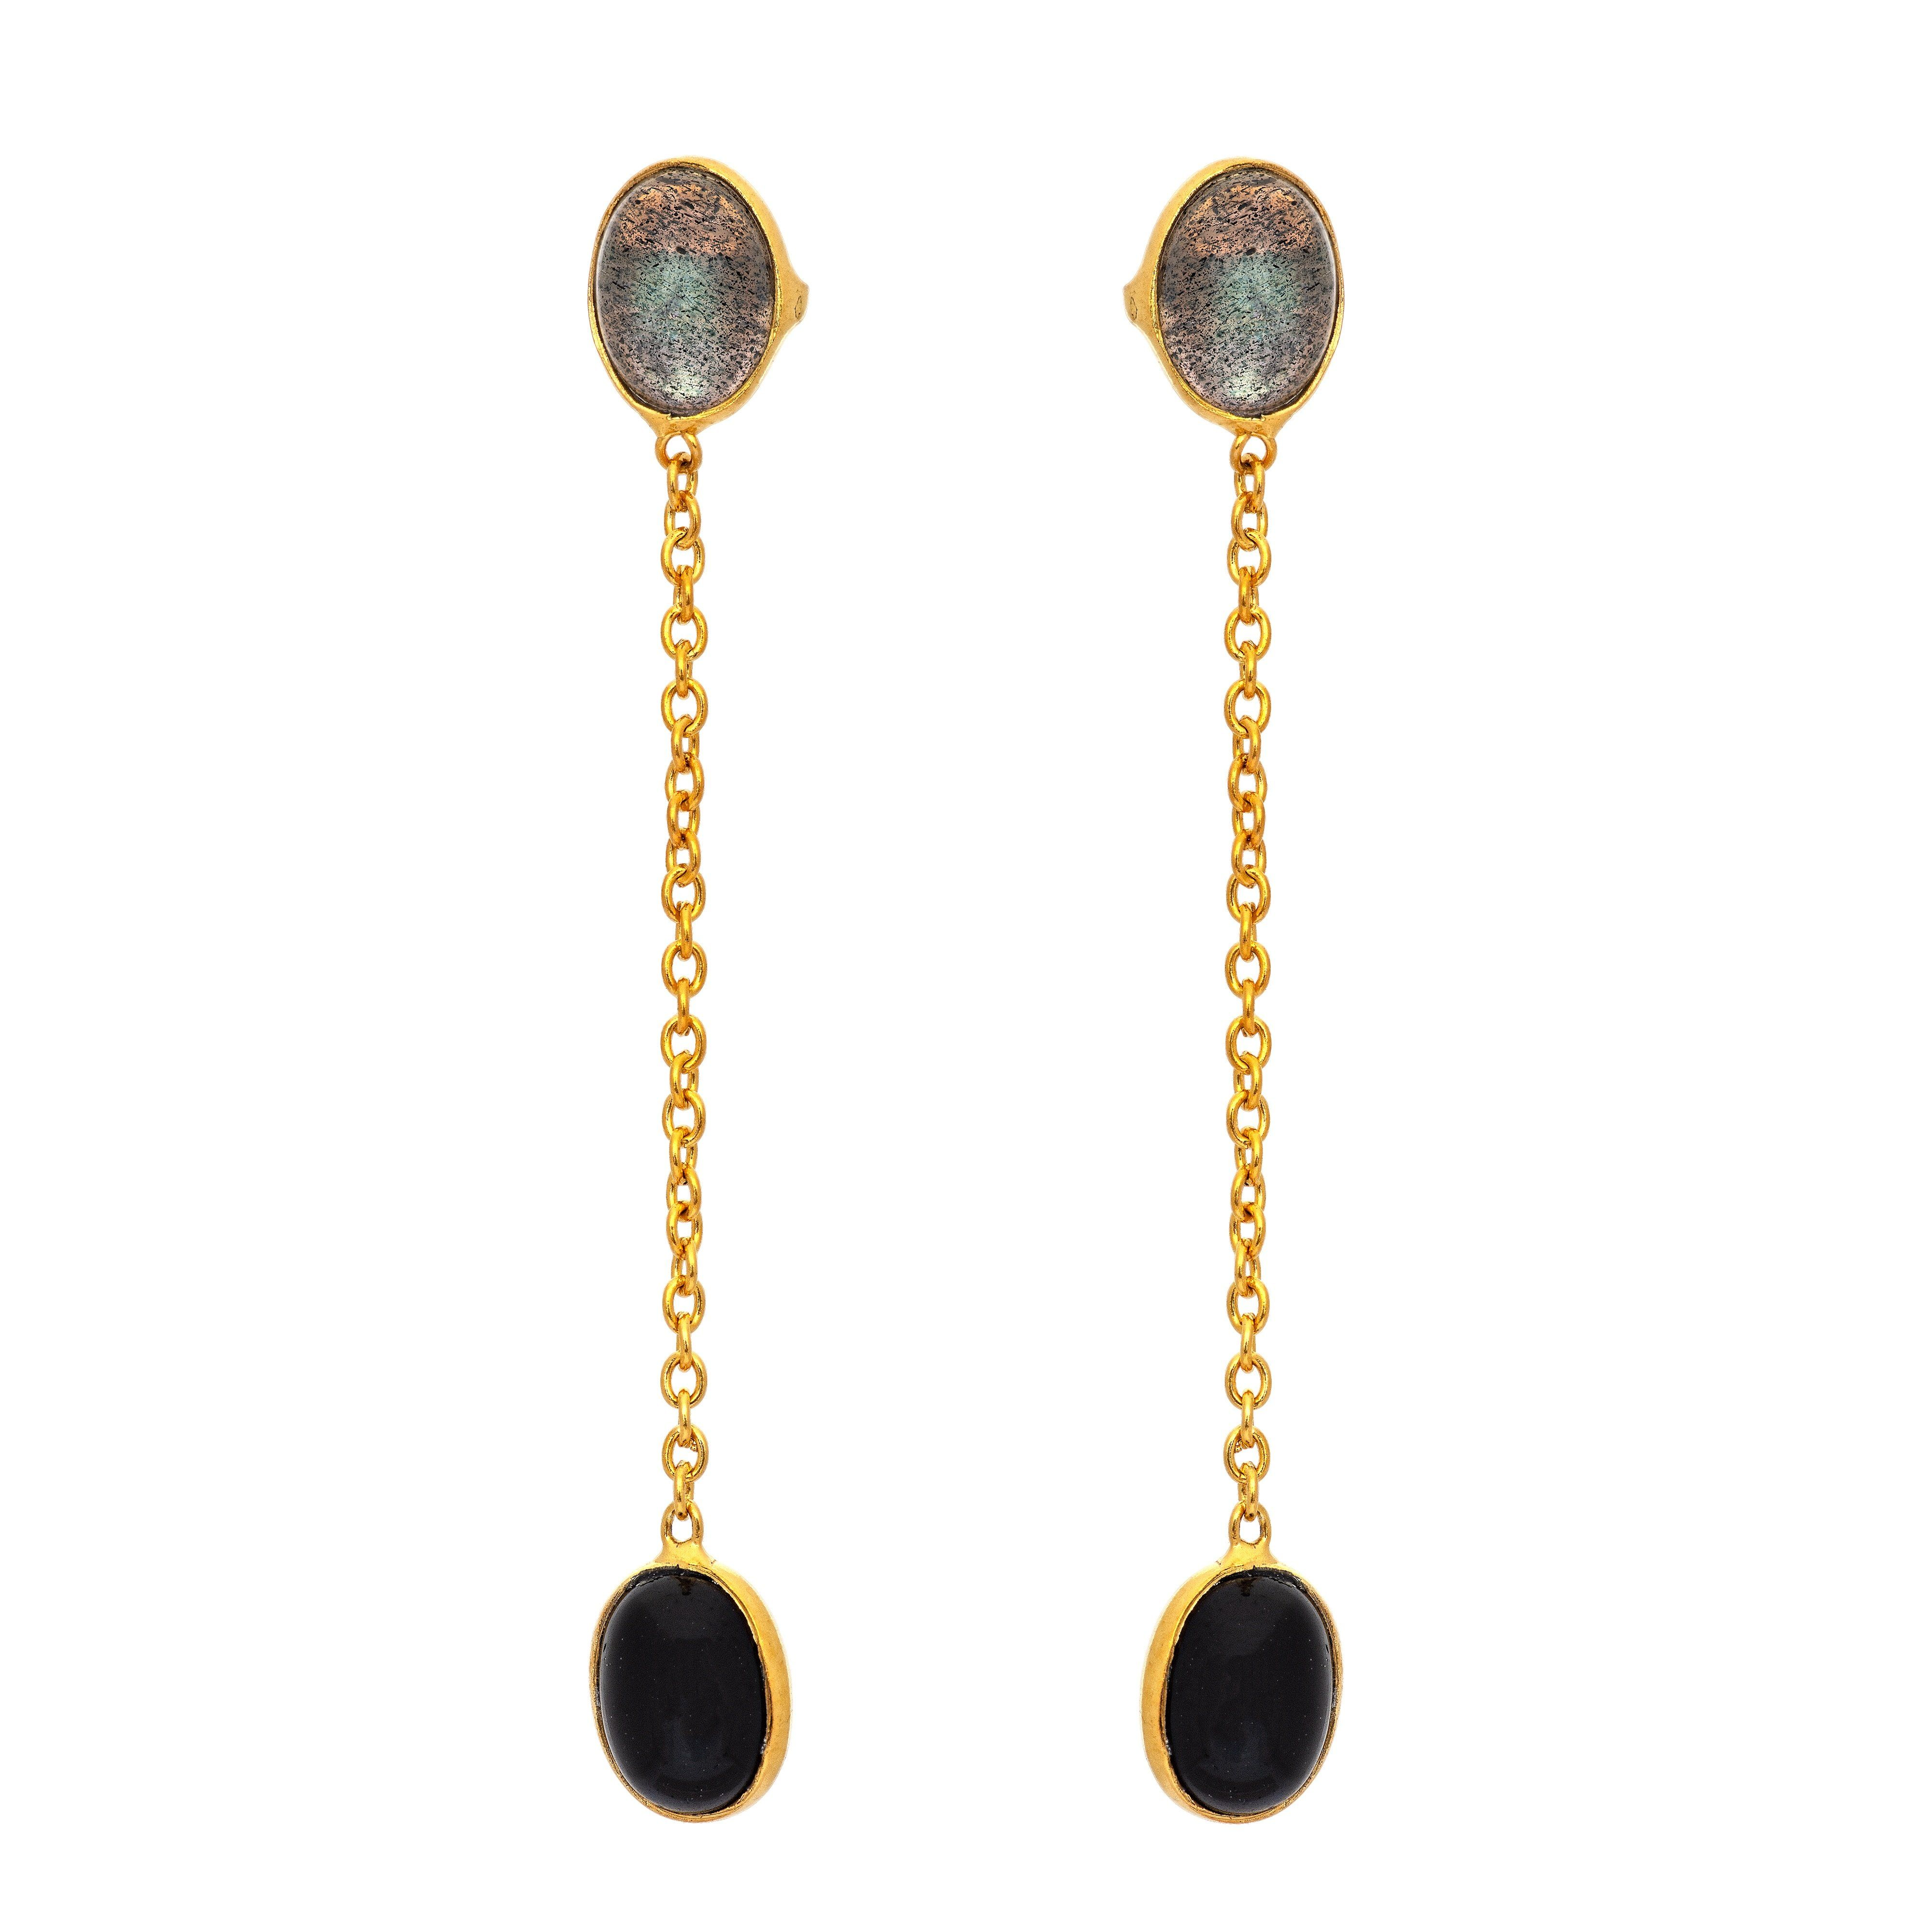 FUTA Black onyx earrings - MadamSiam